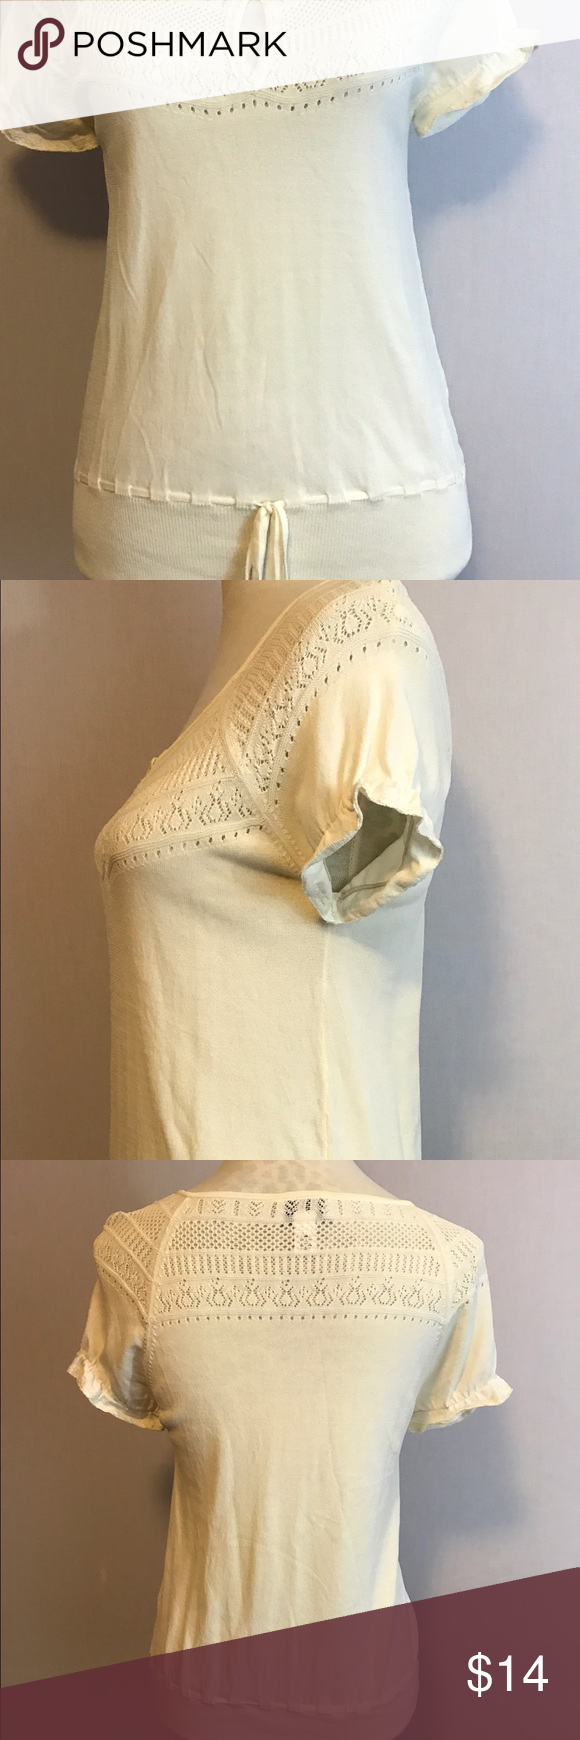 Ann Taylor LOFT Top Size XS Cream top. Short sleeve. Band with tie around bottom. 63% rayon 37% nylon LOFT Tops Blouses